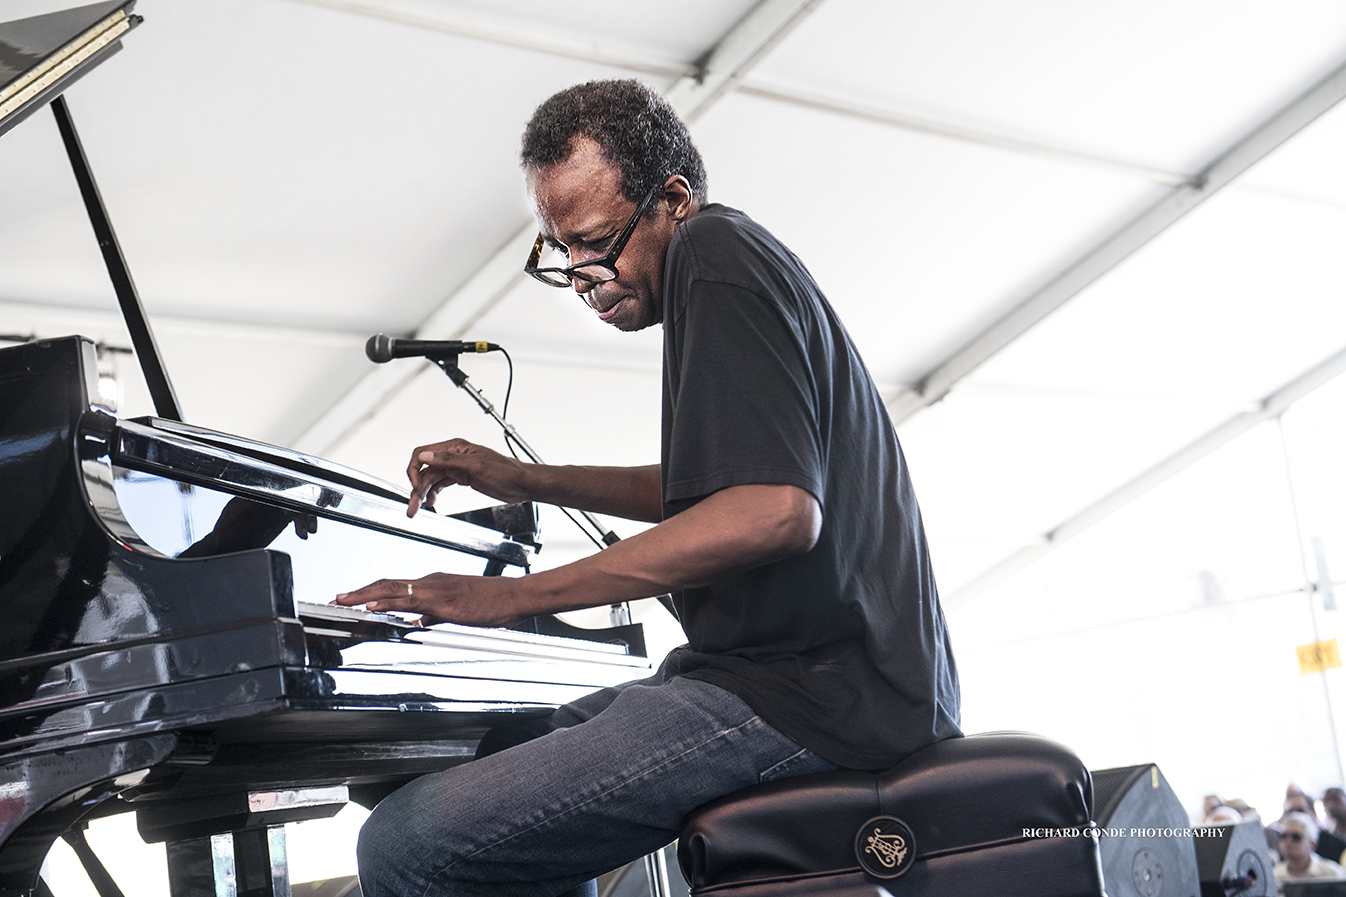 Matthew Shipp at the 2018 Newport Jazz Festival